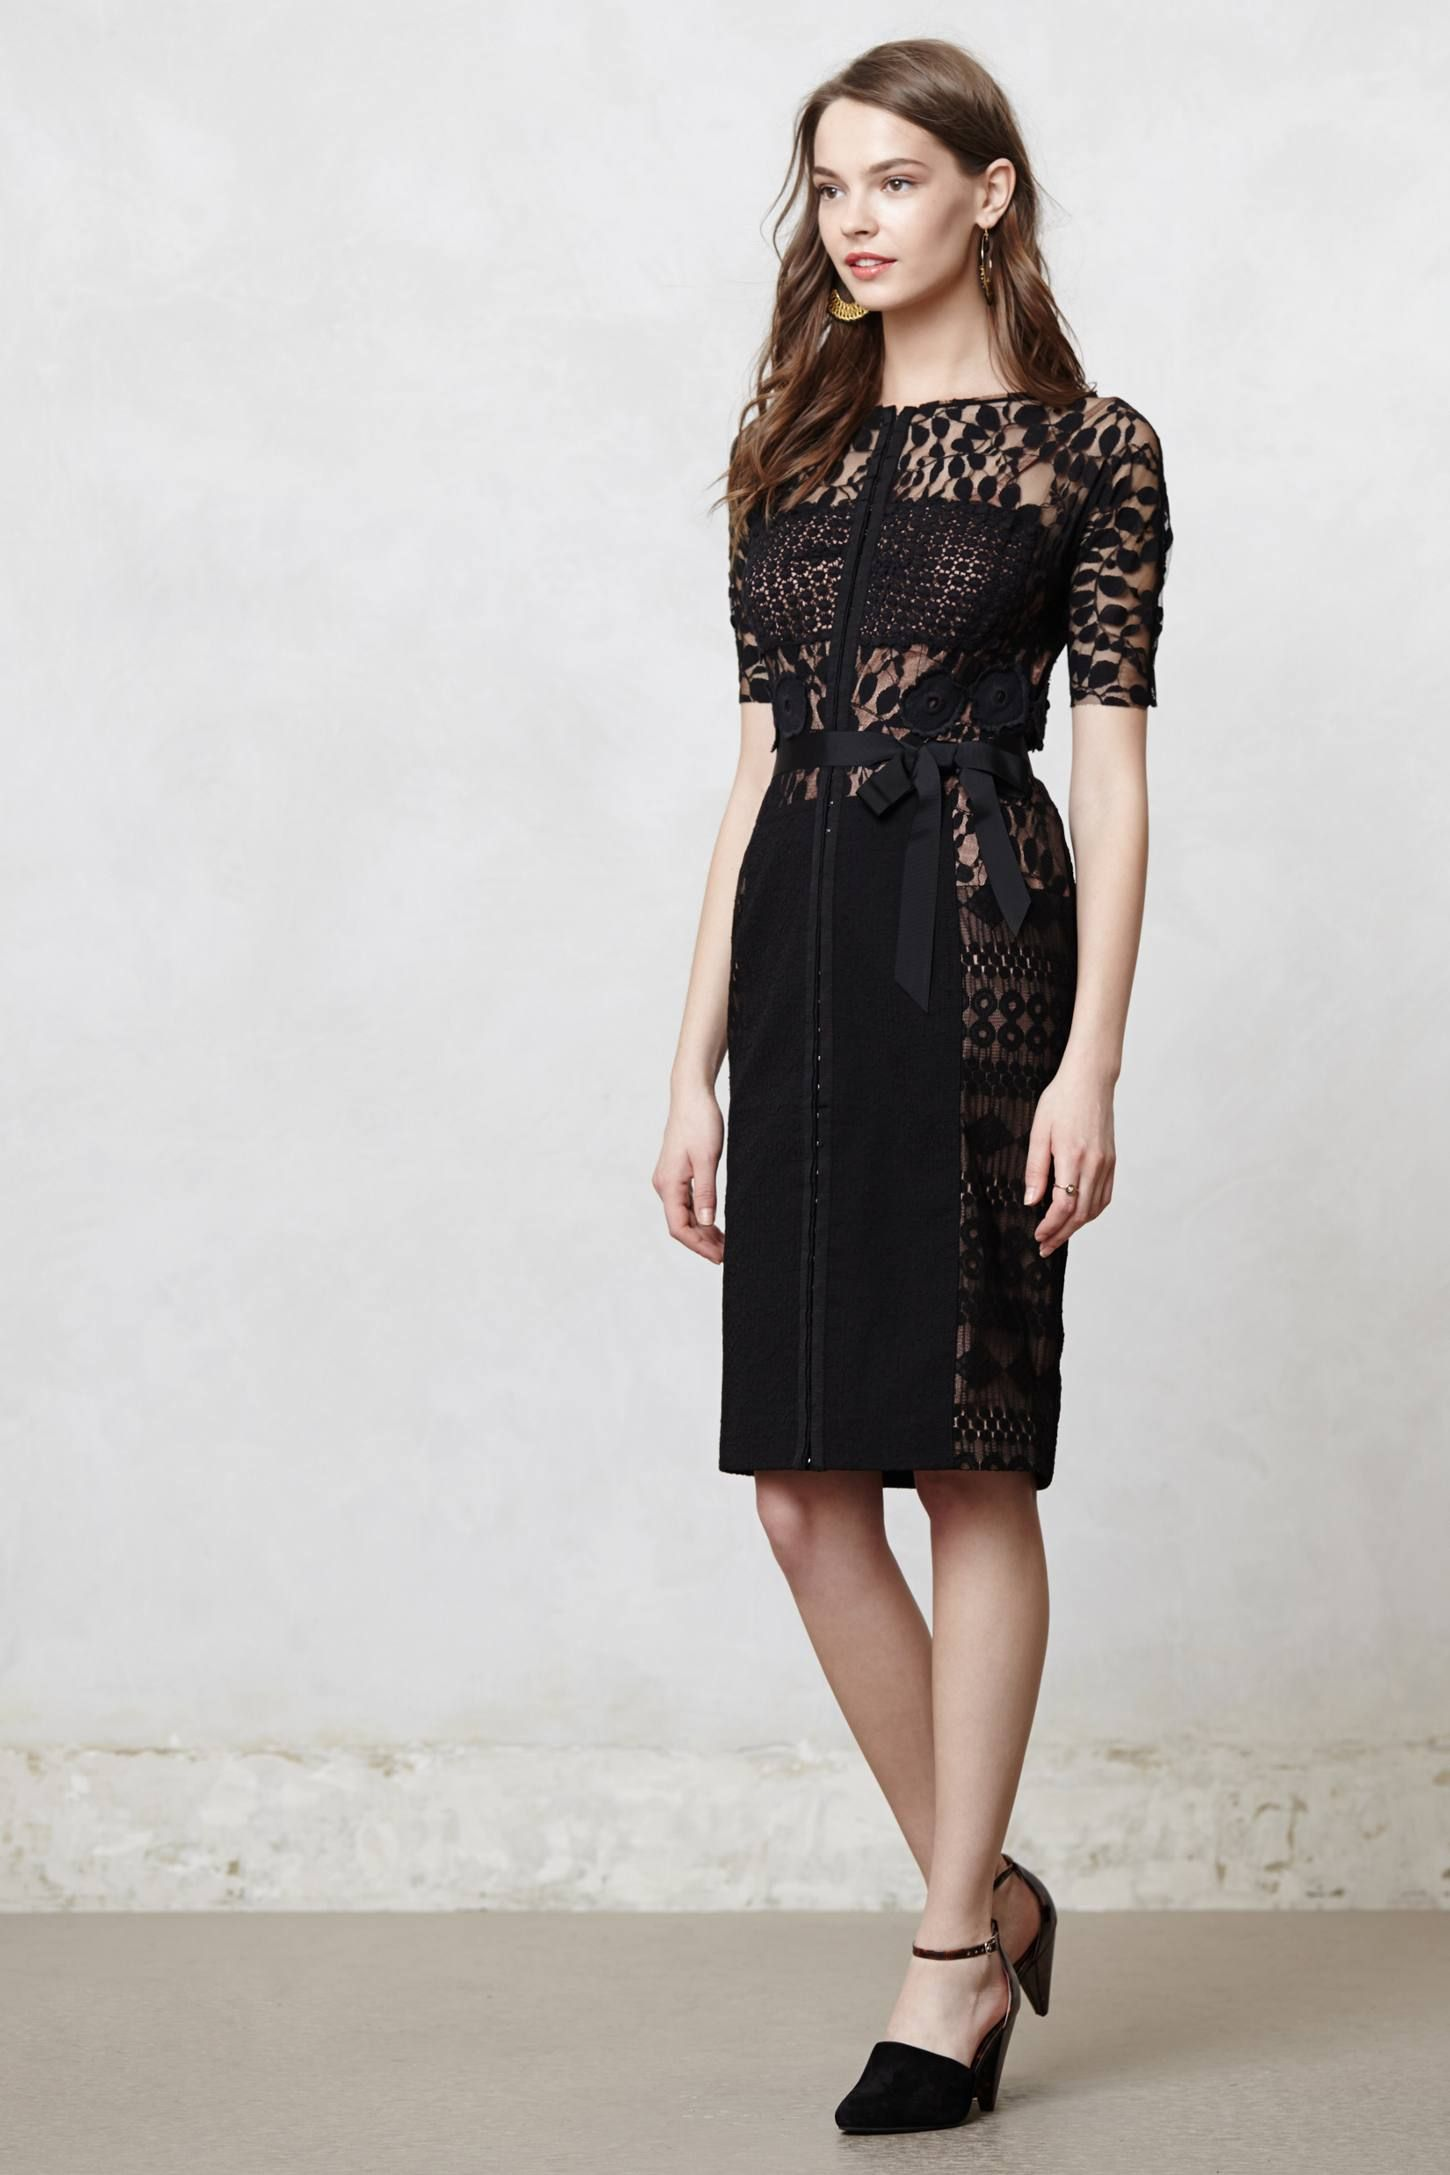 552c8cef72bd Carissima Sheath - anthropologie.com. Carissima Sheath - anthropologie.com Byron  Lars, Black Tie Affair, Lace Dress,